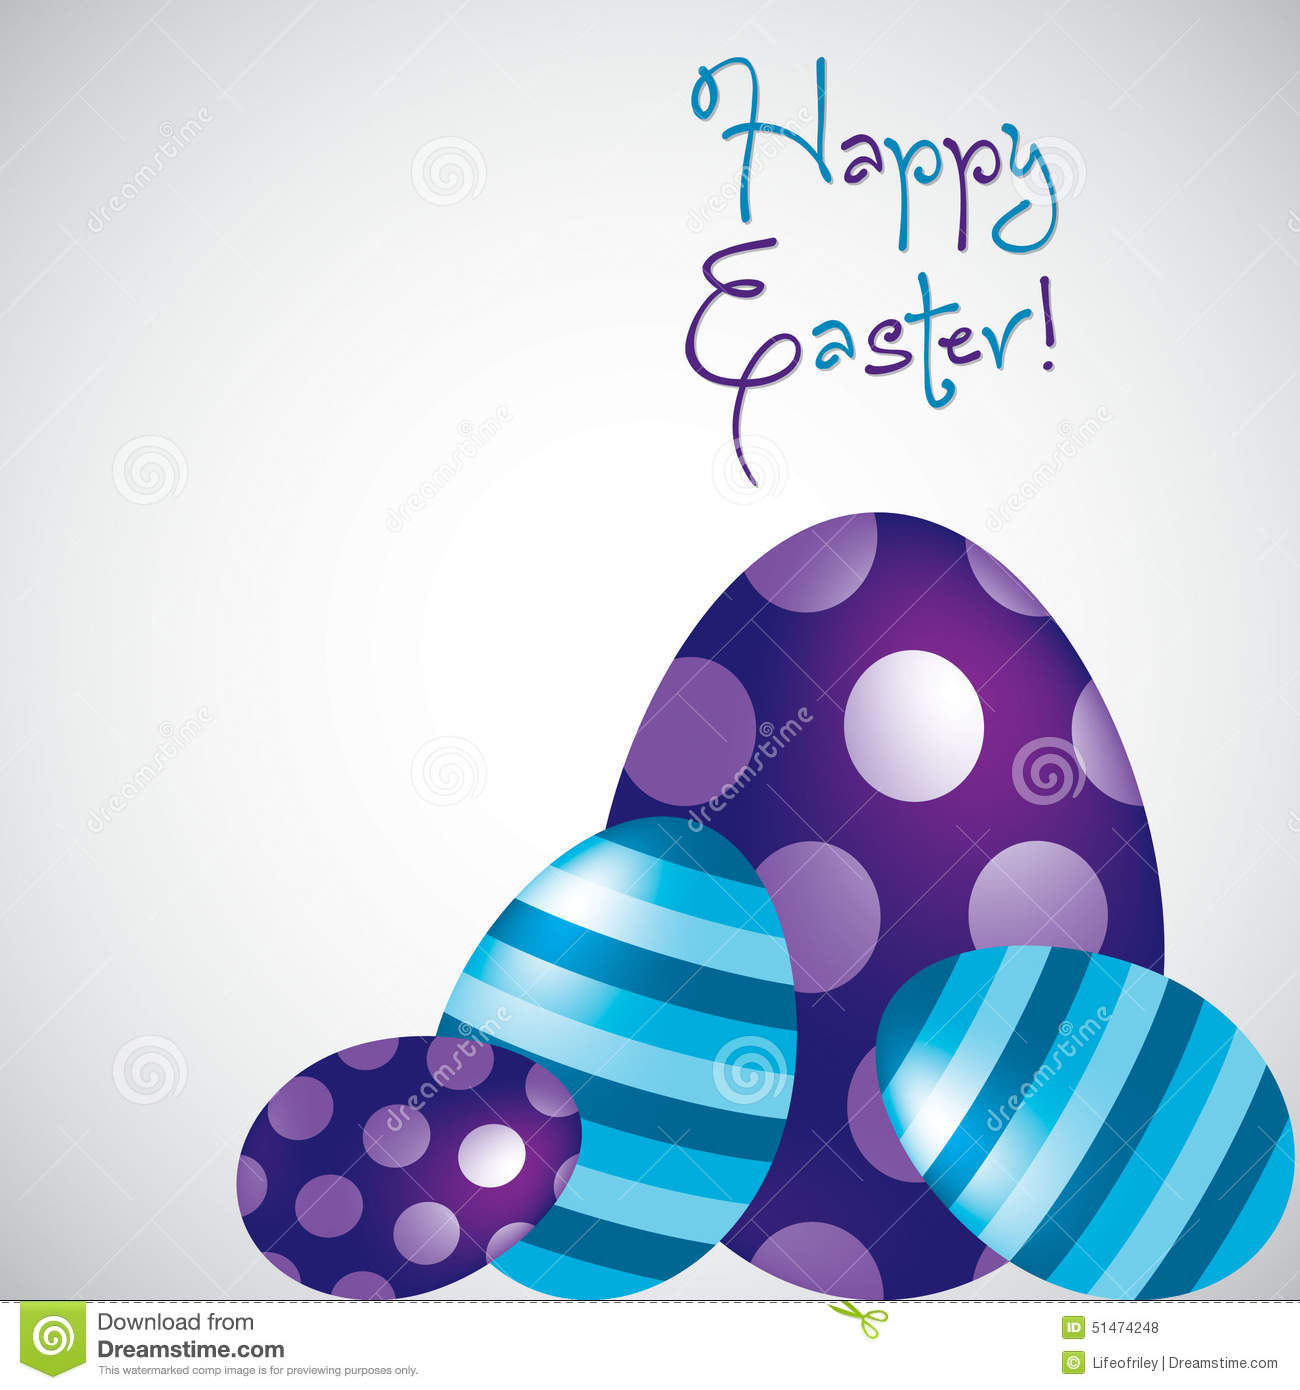 14 Happy Easter Vector Format Images